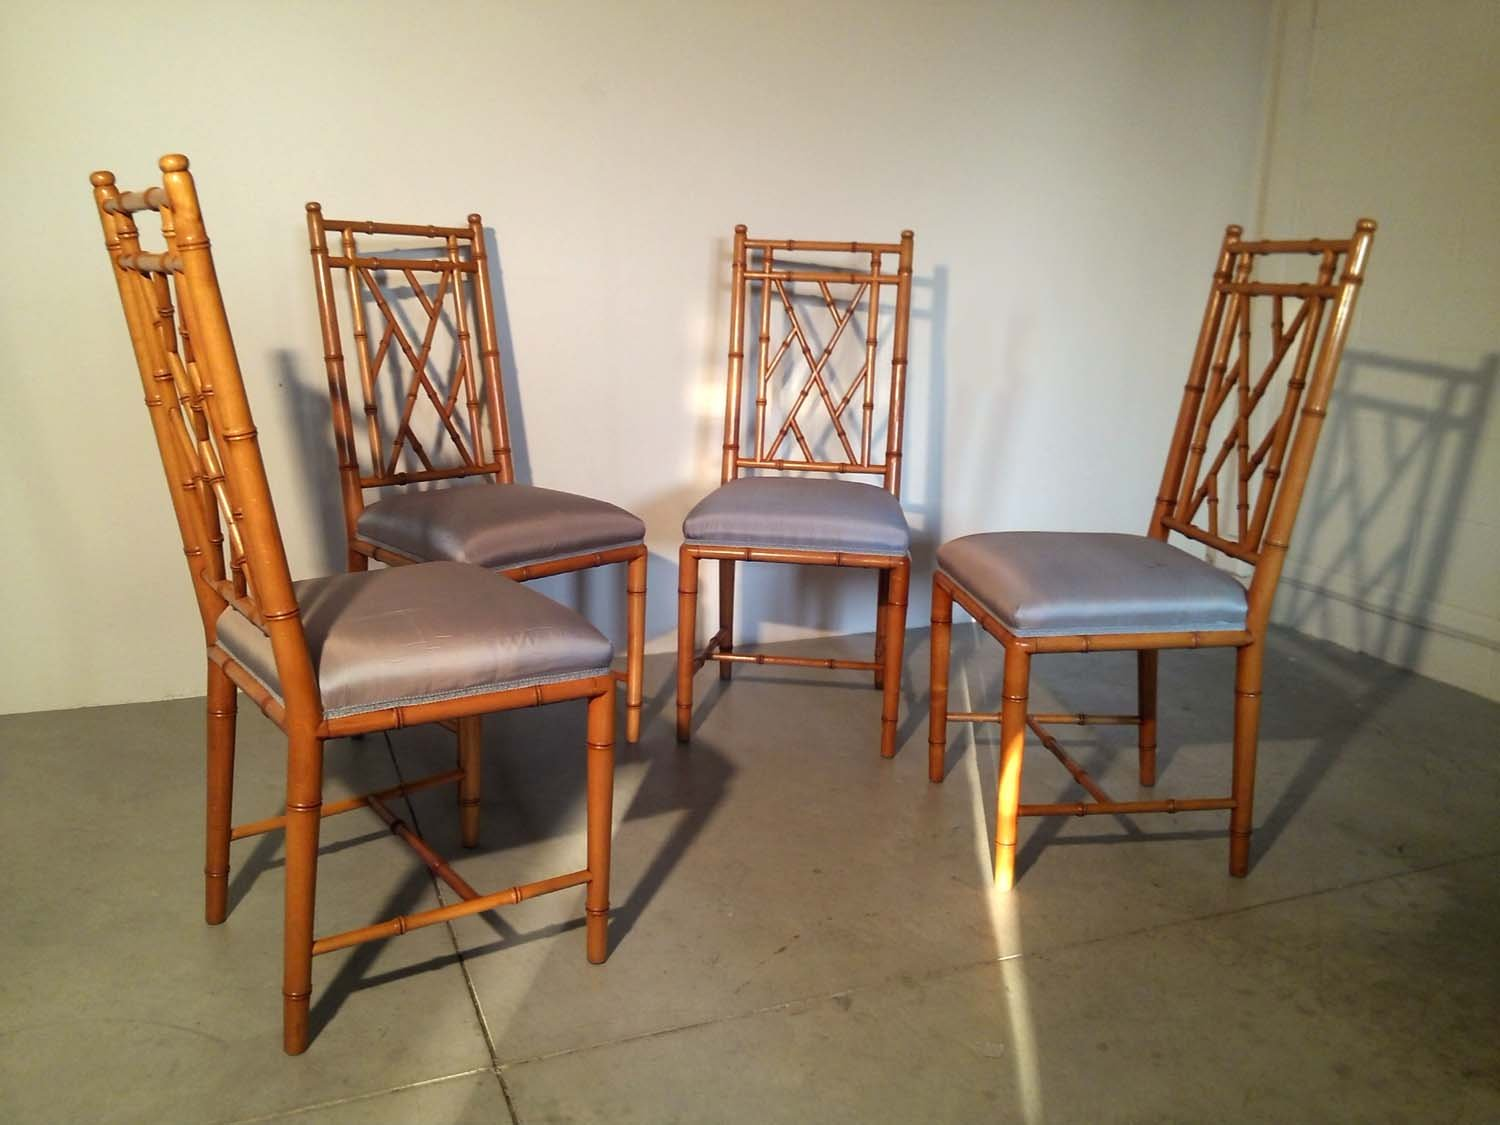 Faux Bamboo Chairs 1970s Set Of 4 For Sale At Pamono